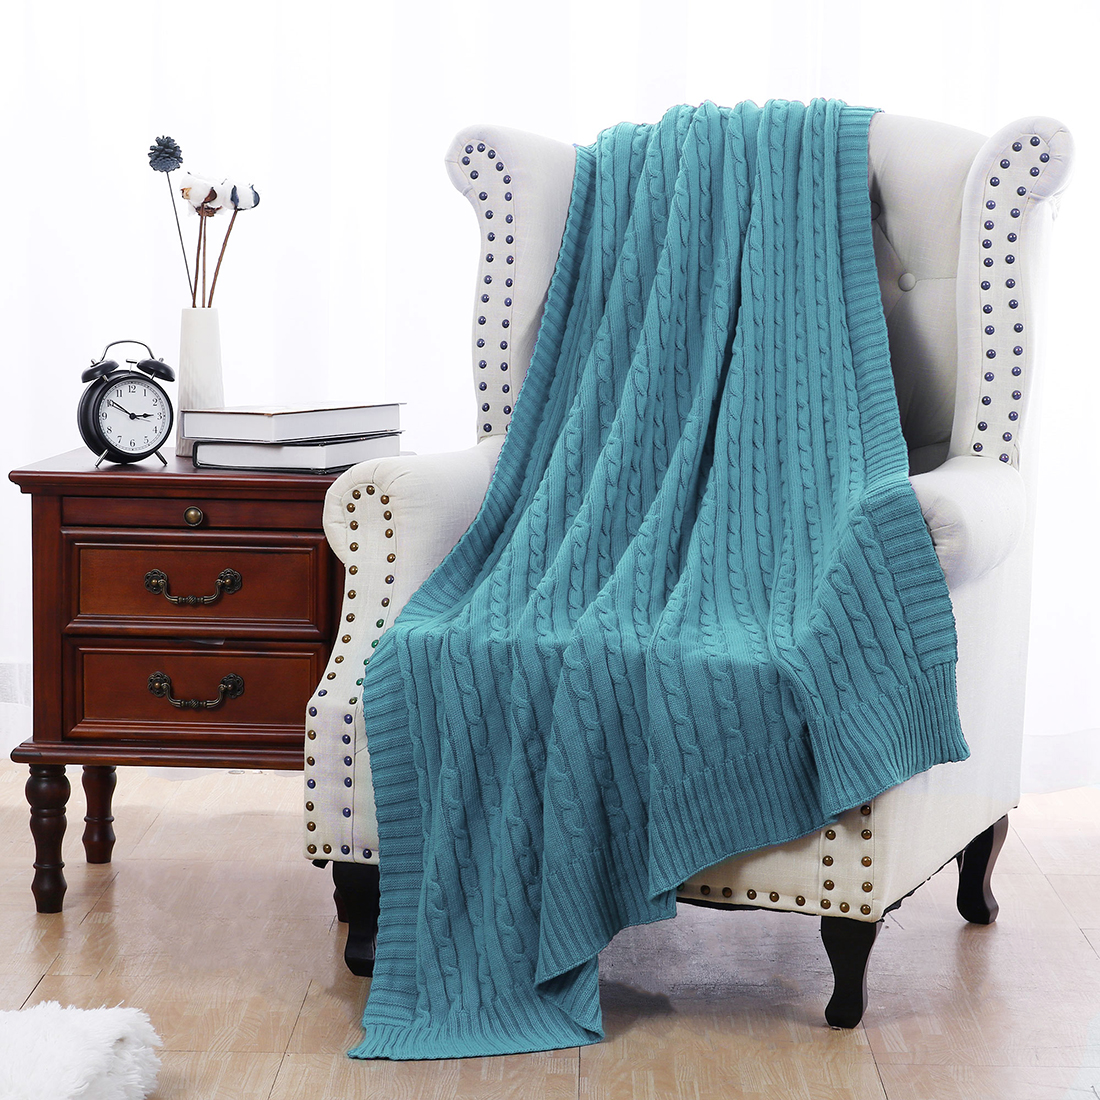 "Cotton Blanket Soft Warm Cable Knit Throw Home Bedding Blanket Teal Blue 50""x60"" - image 7 de 8"